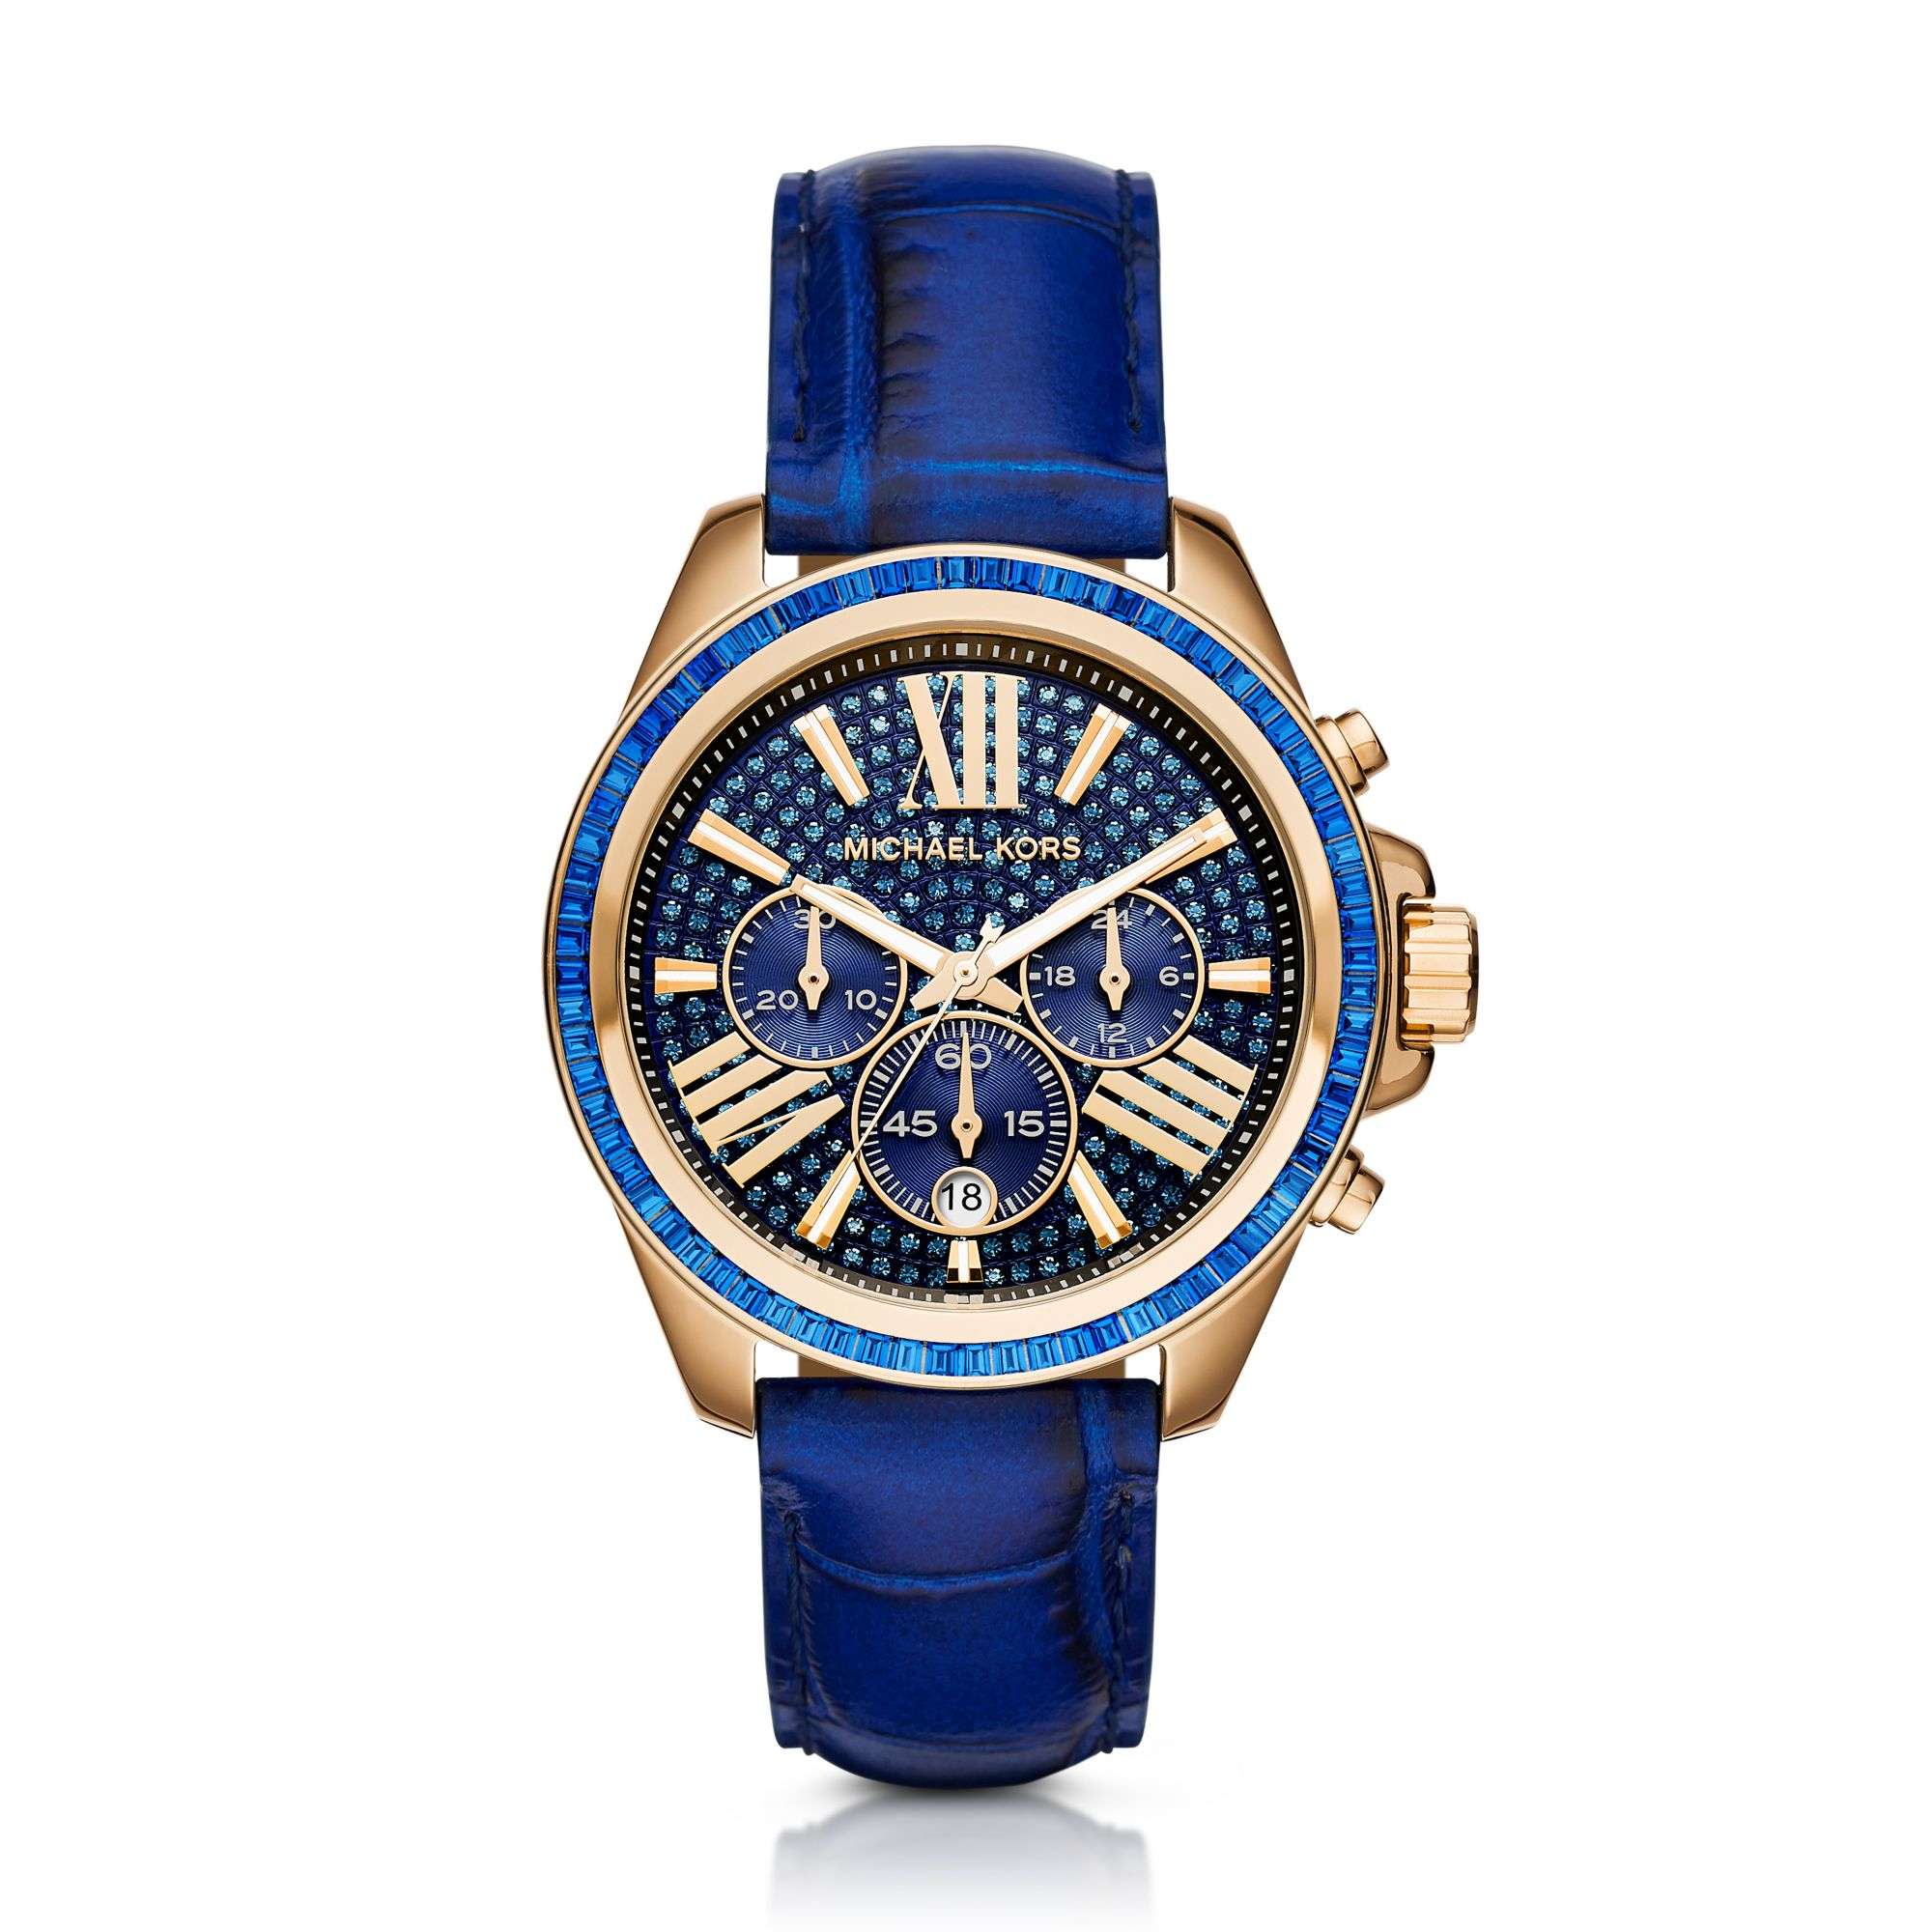 Michael kors Wren Gold-tone And Leather Watch in Blue | Lyst